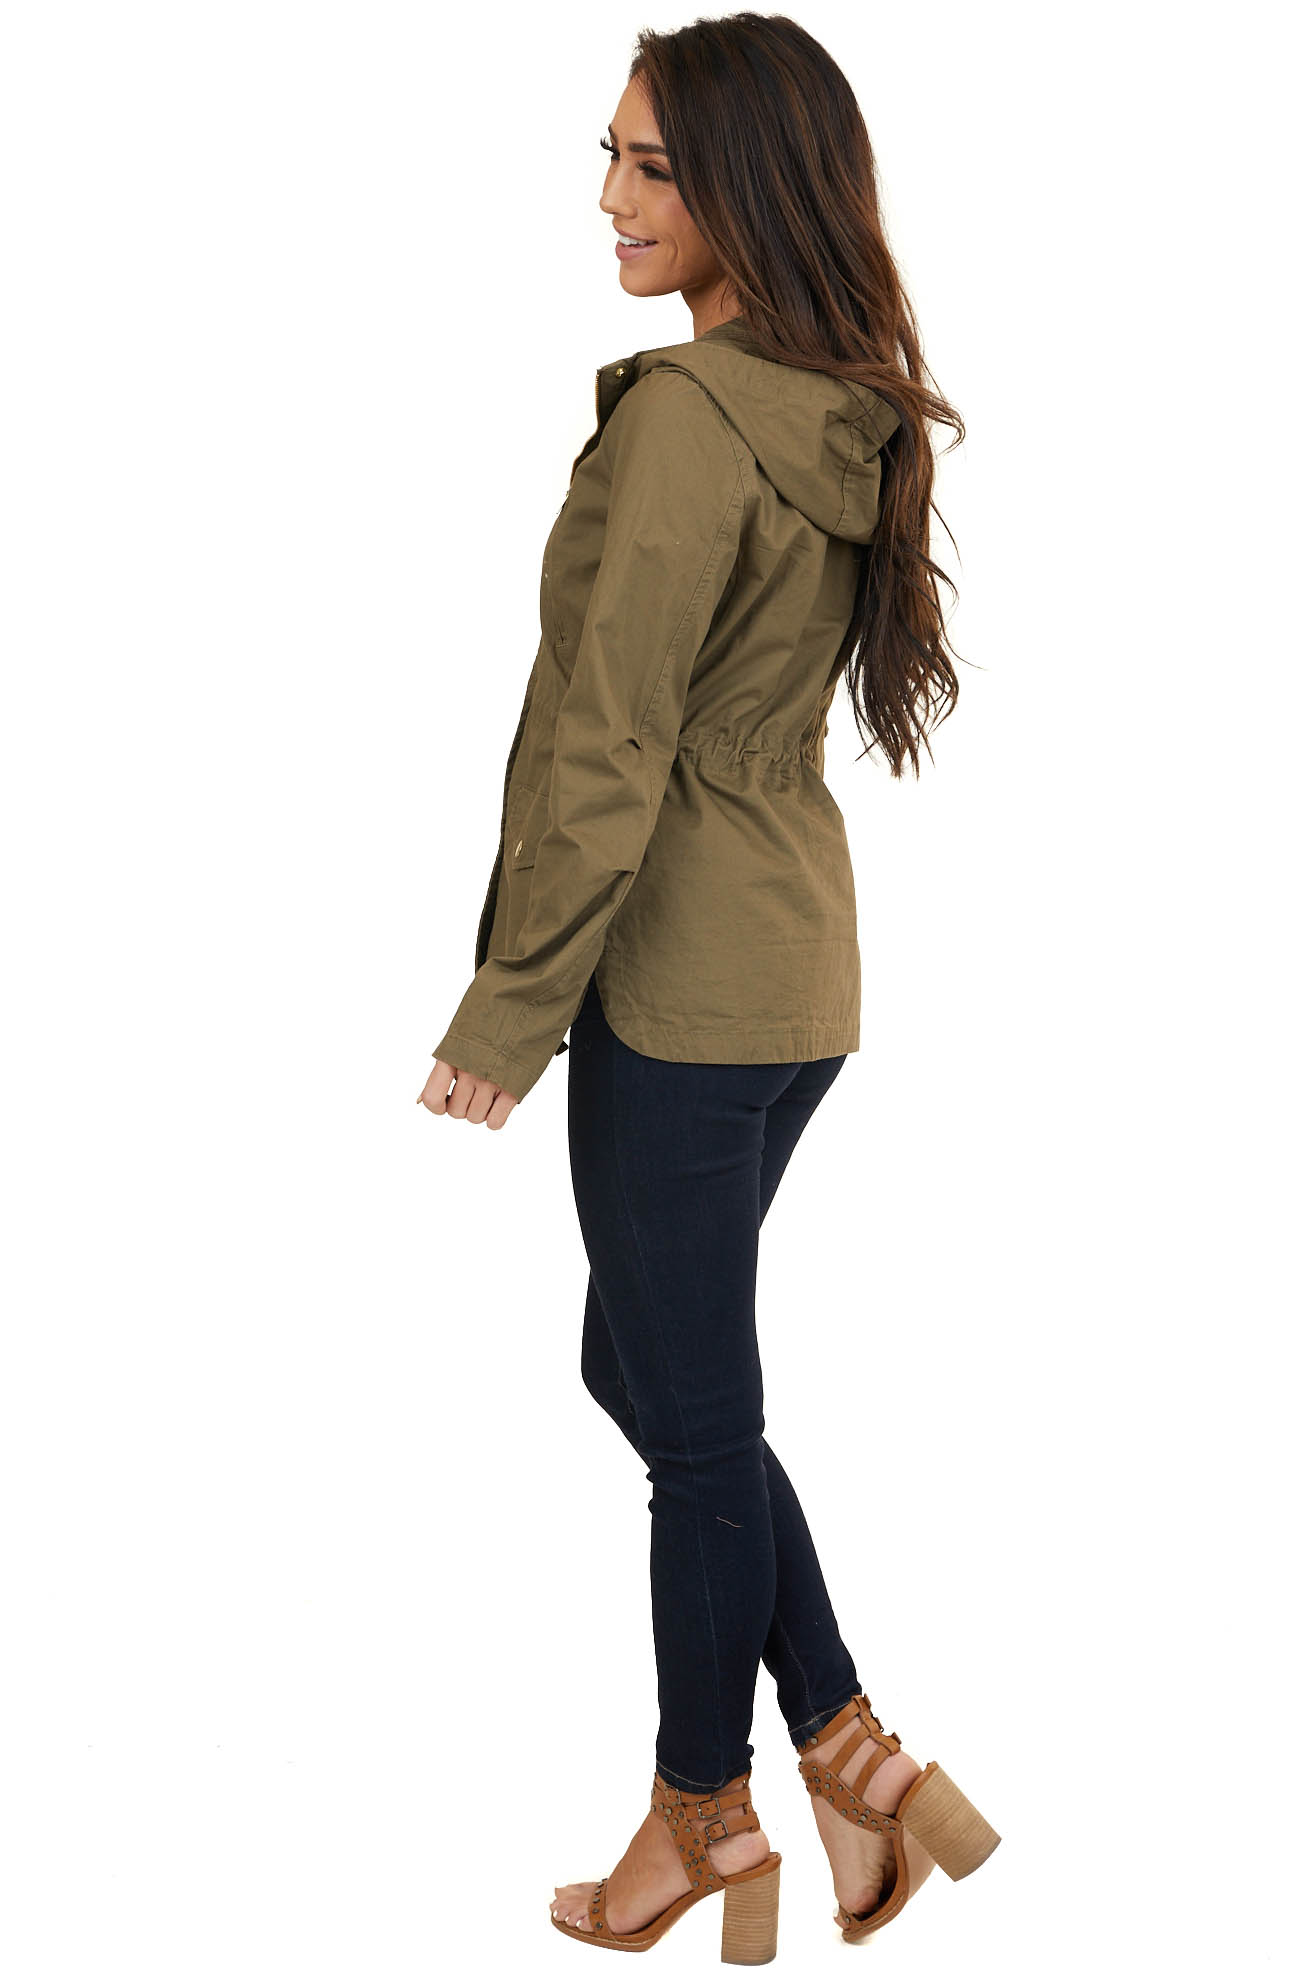 Olive Utility Jacket with Hood and Gold Button Details